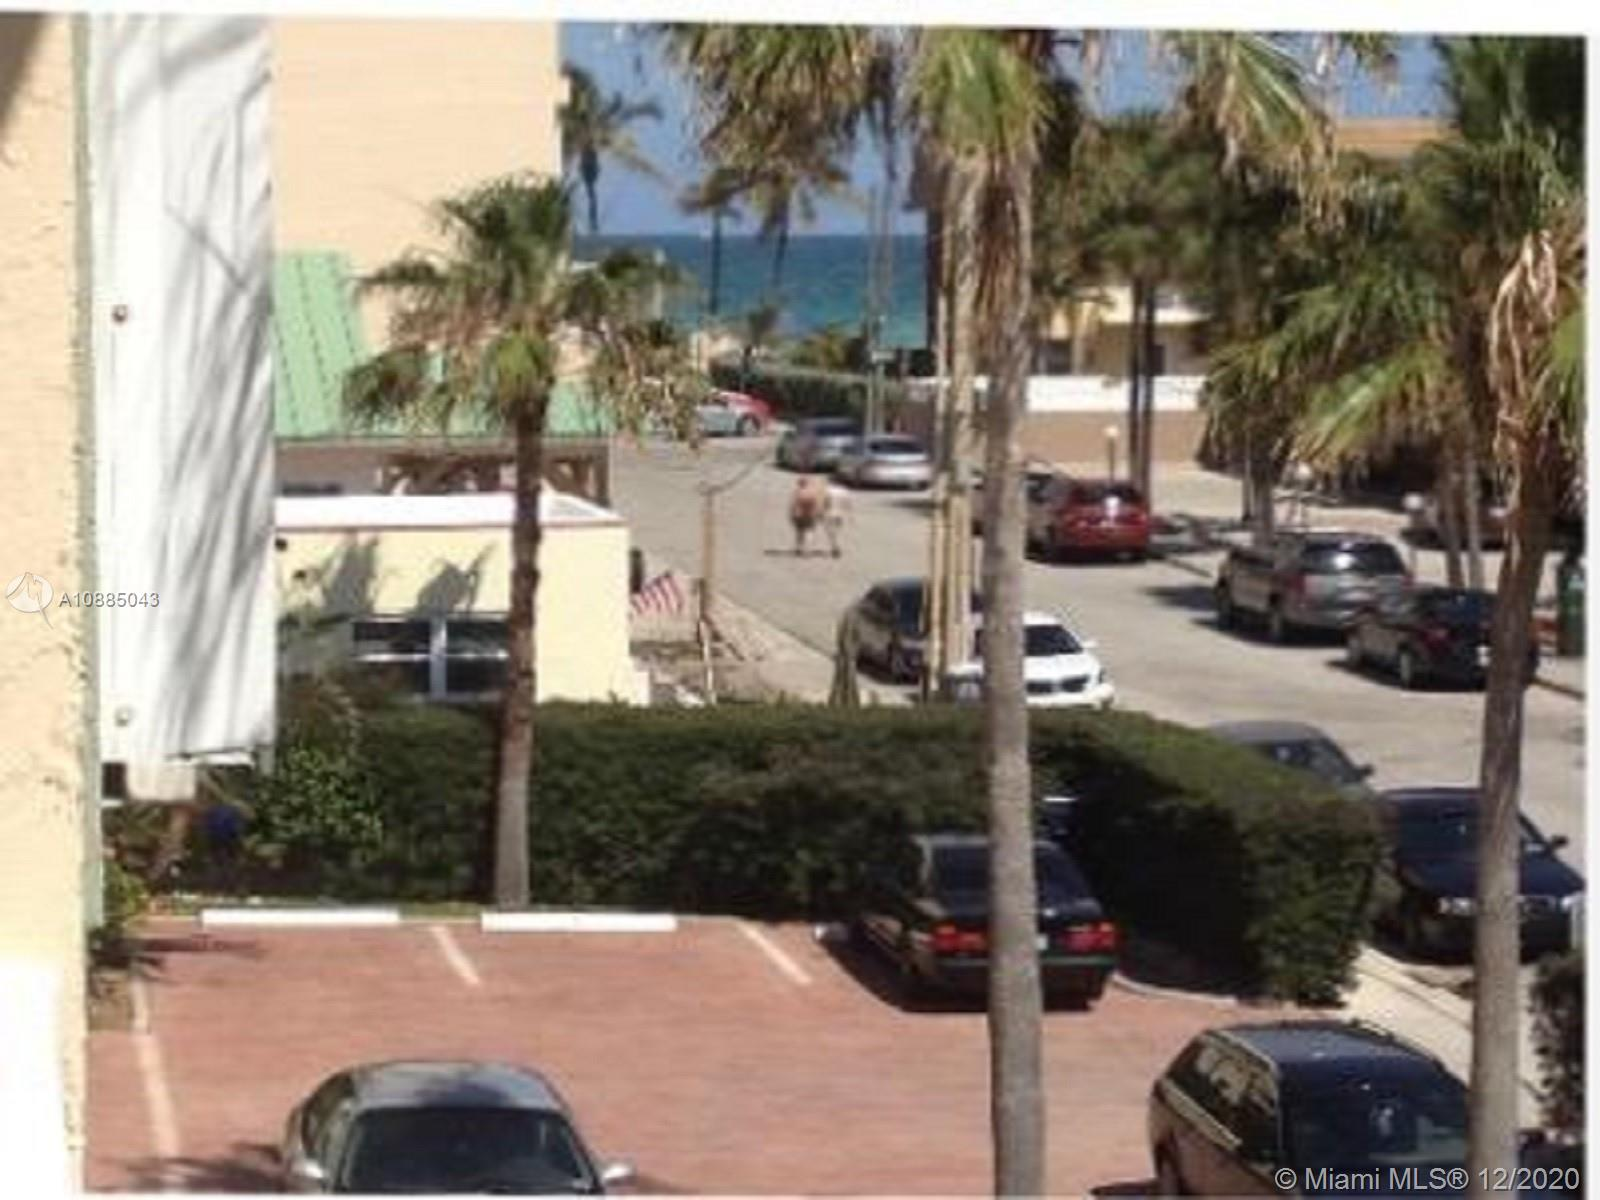 347  Virginia St #347 For Sale A10885043, FL